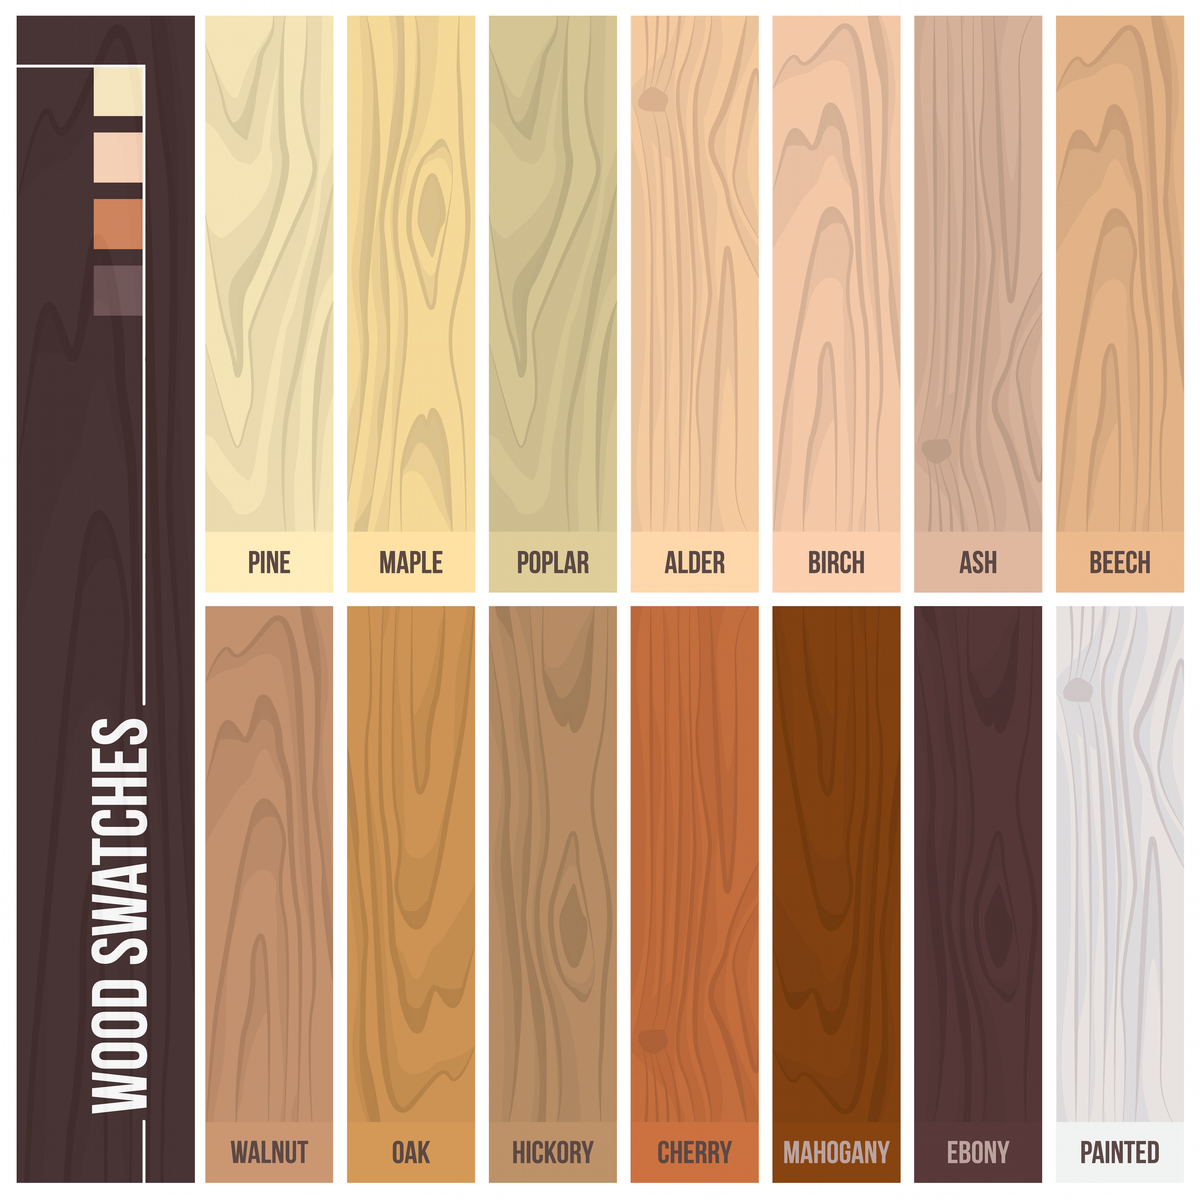 Exhaustive Guide To Hardwood Flooring Including Types Species Styles Dimensions Edges Types Of Wood Flooring Types Of Hardwood Floors Wood Interior Design